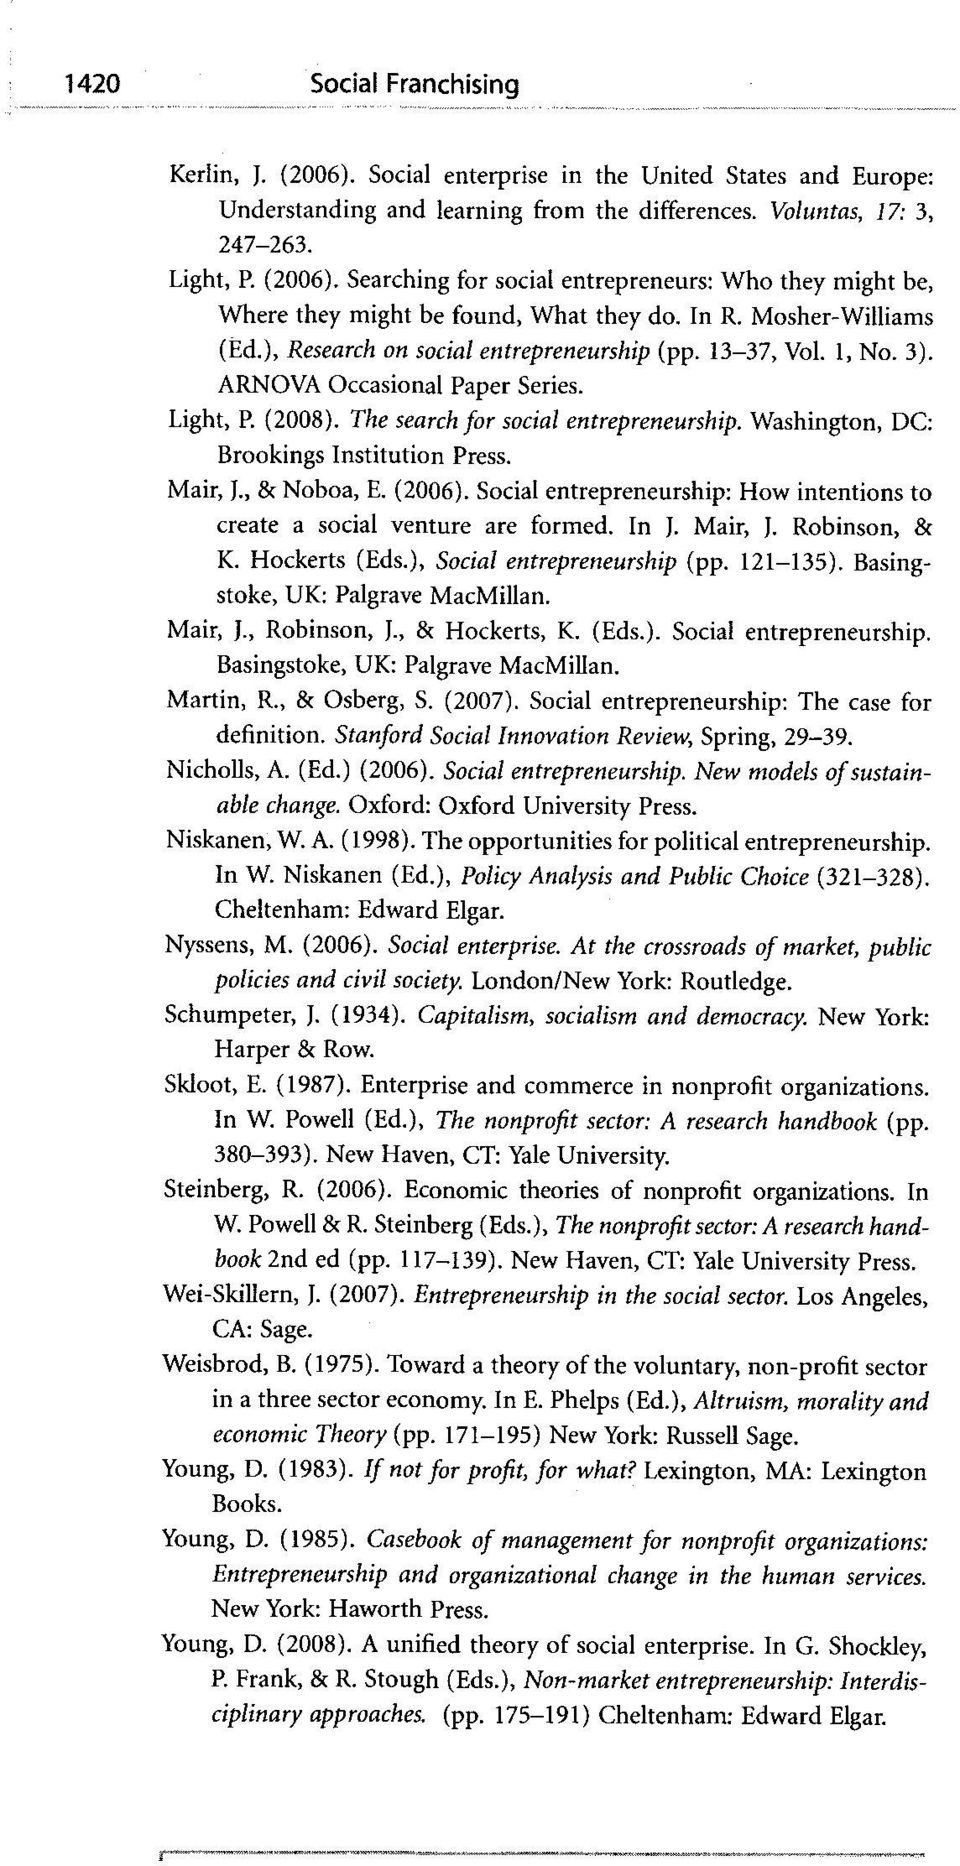 Washington, DC: Brookings Institution Press. Mair, )., & Noboa, E. (2006). Social entrepreneurship: How intentions to create a social venture are formed. In ). Mair, [, Robinson, & K. Hockerts (Eds.